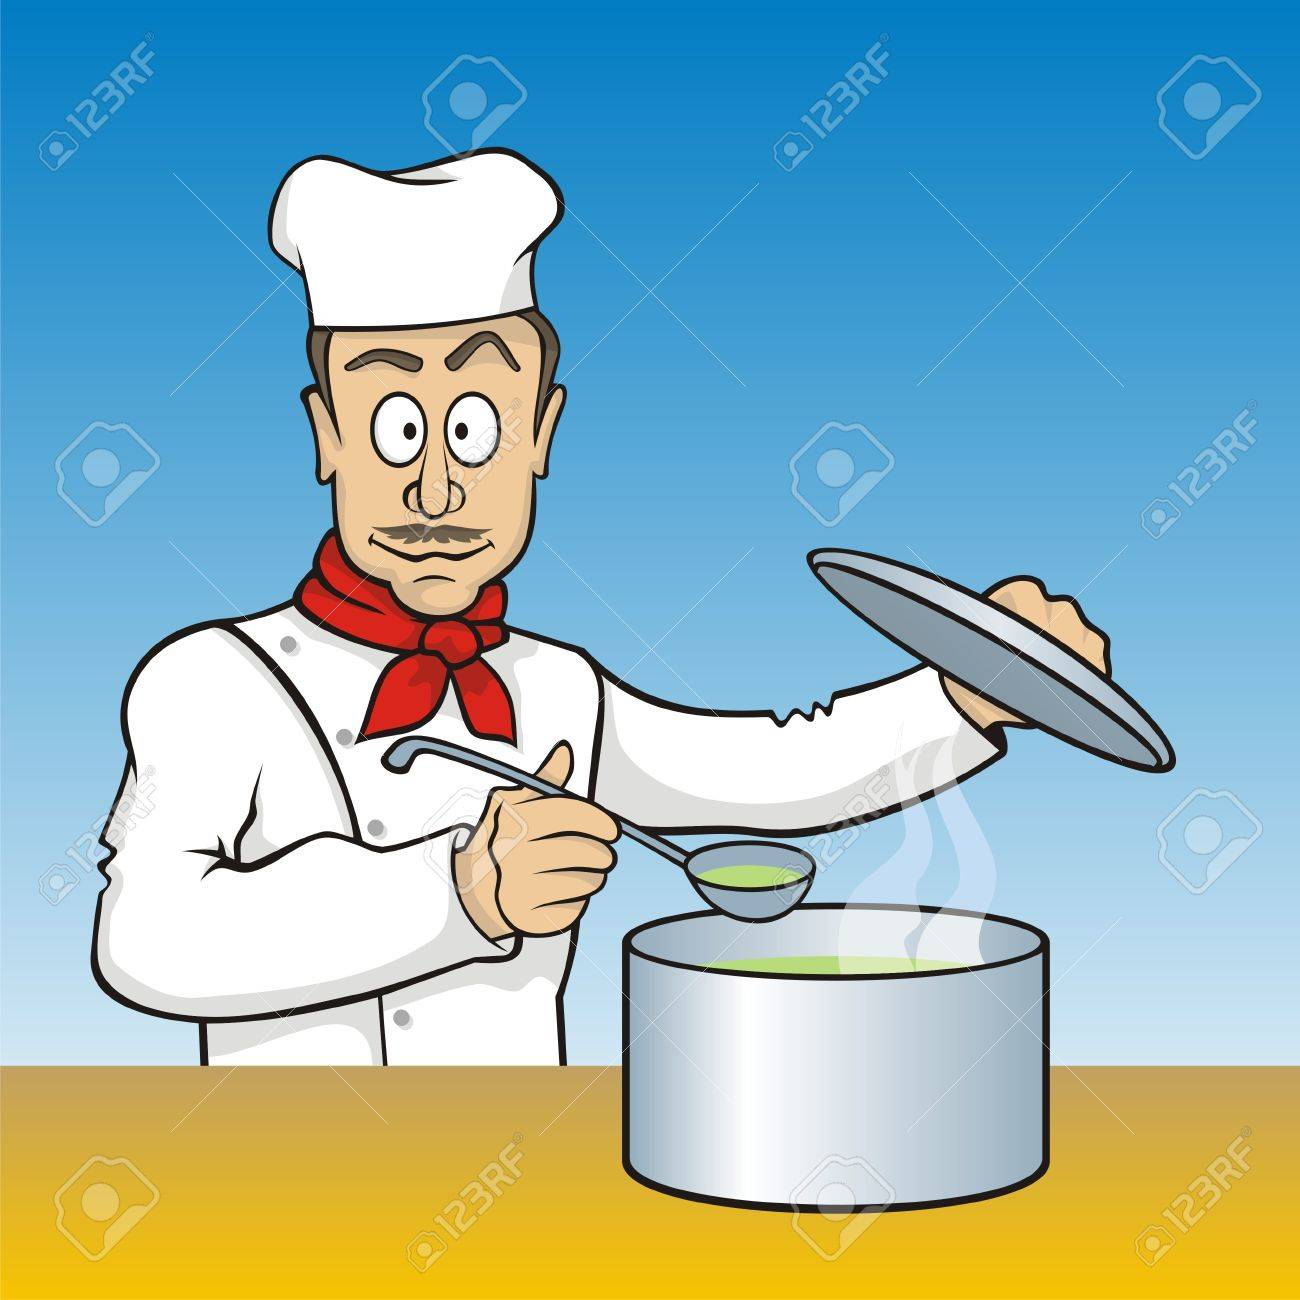 Cartoon Chef With Scoop Testing The Soup Royalty Free Cliparts ...